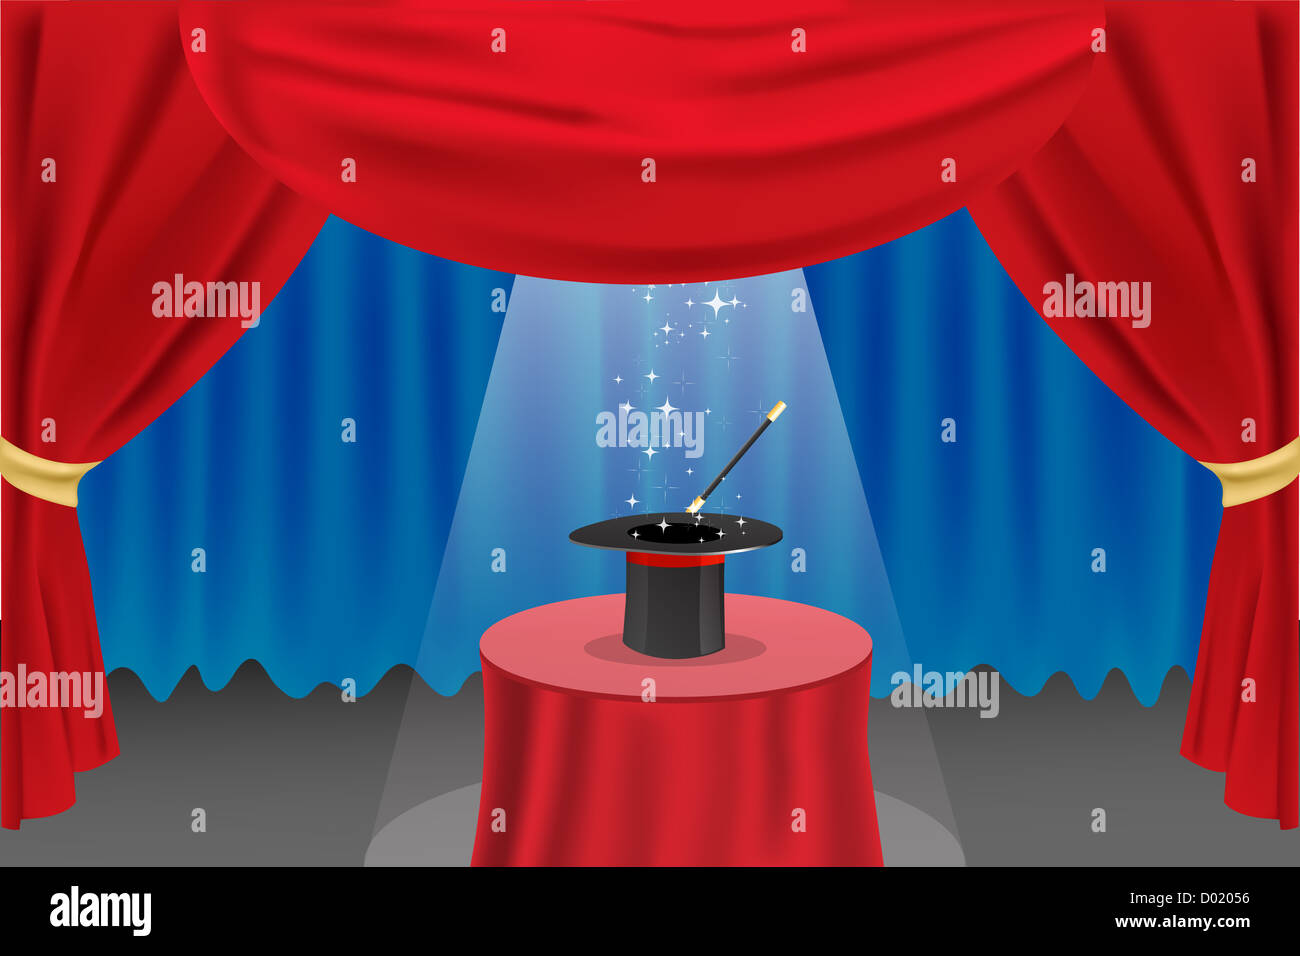 illustration of magic show on stage - Stock Image